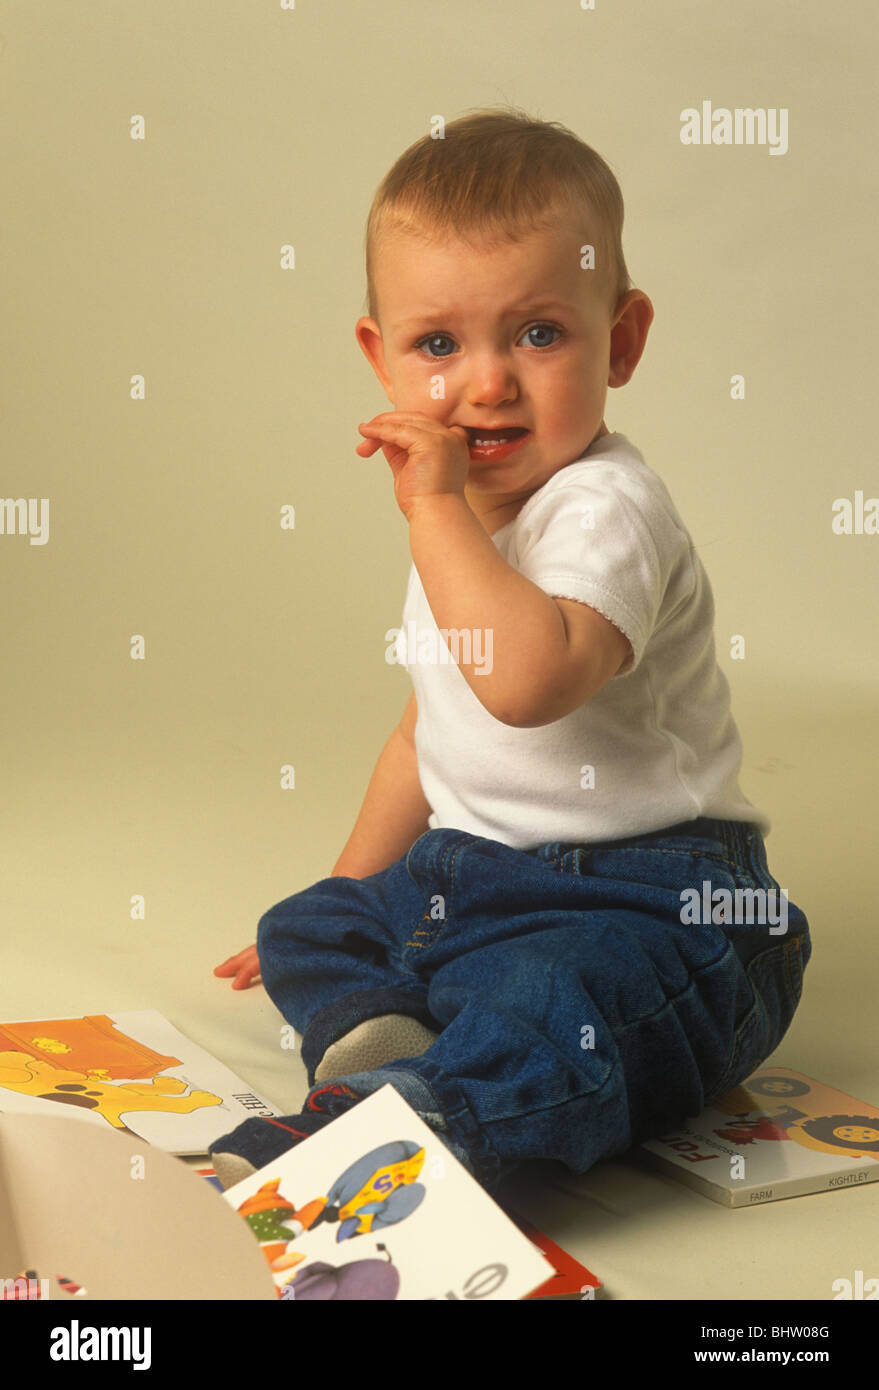 baby of nine months looking worried and tearful - Stock Image